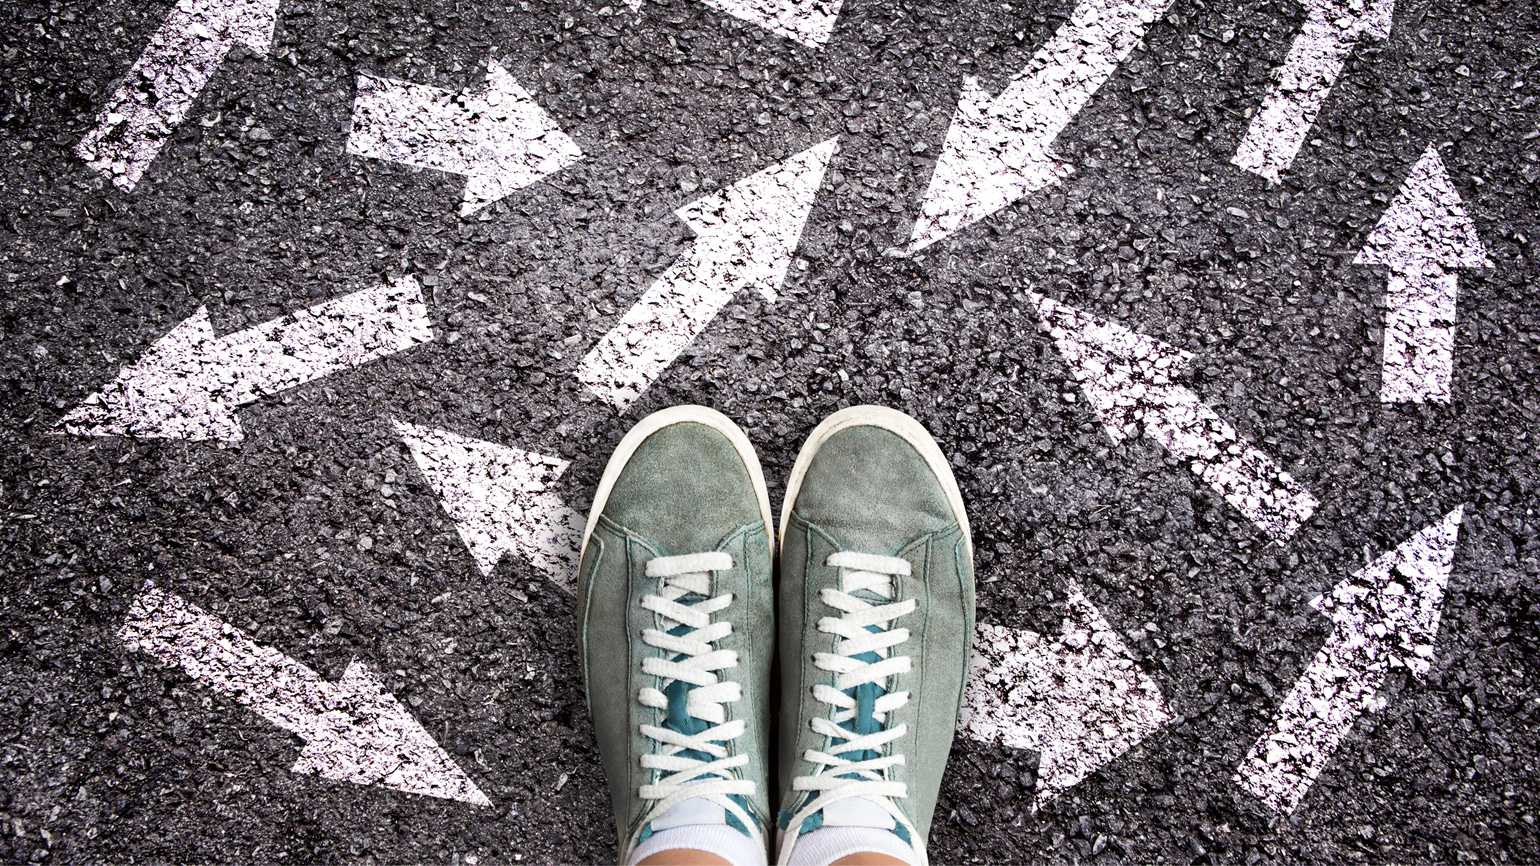 Sneaker shoes and arrows pointing in different directions on asphalt ground.